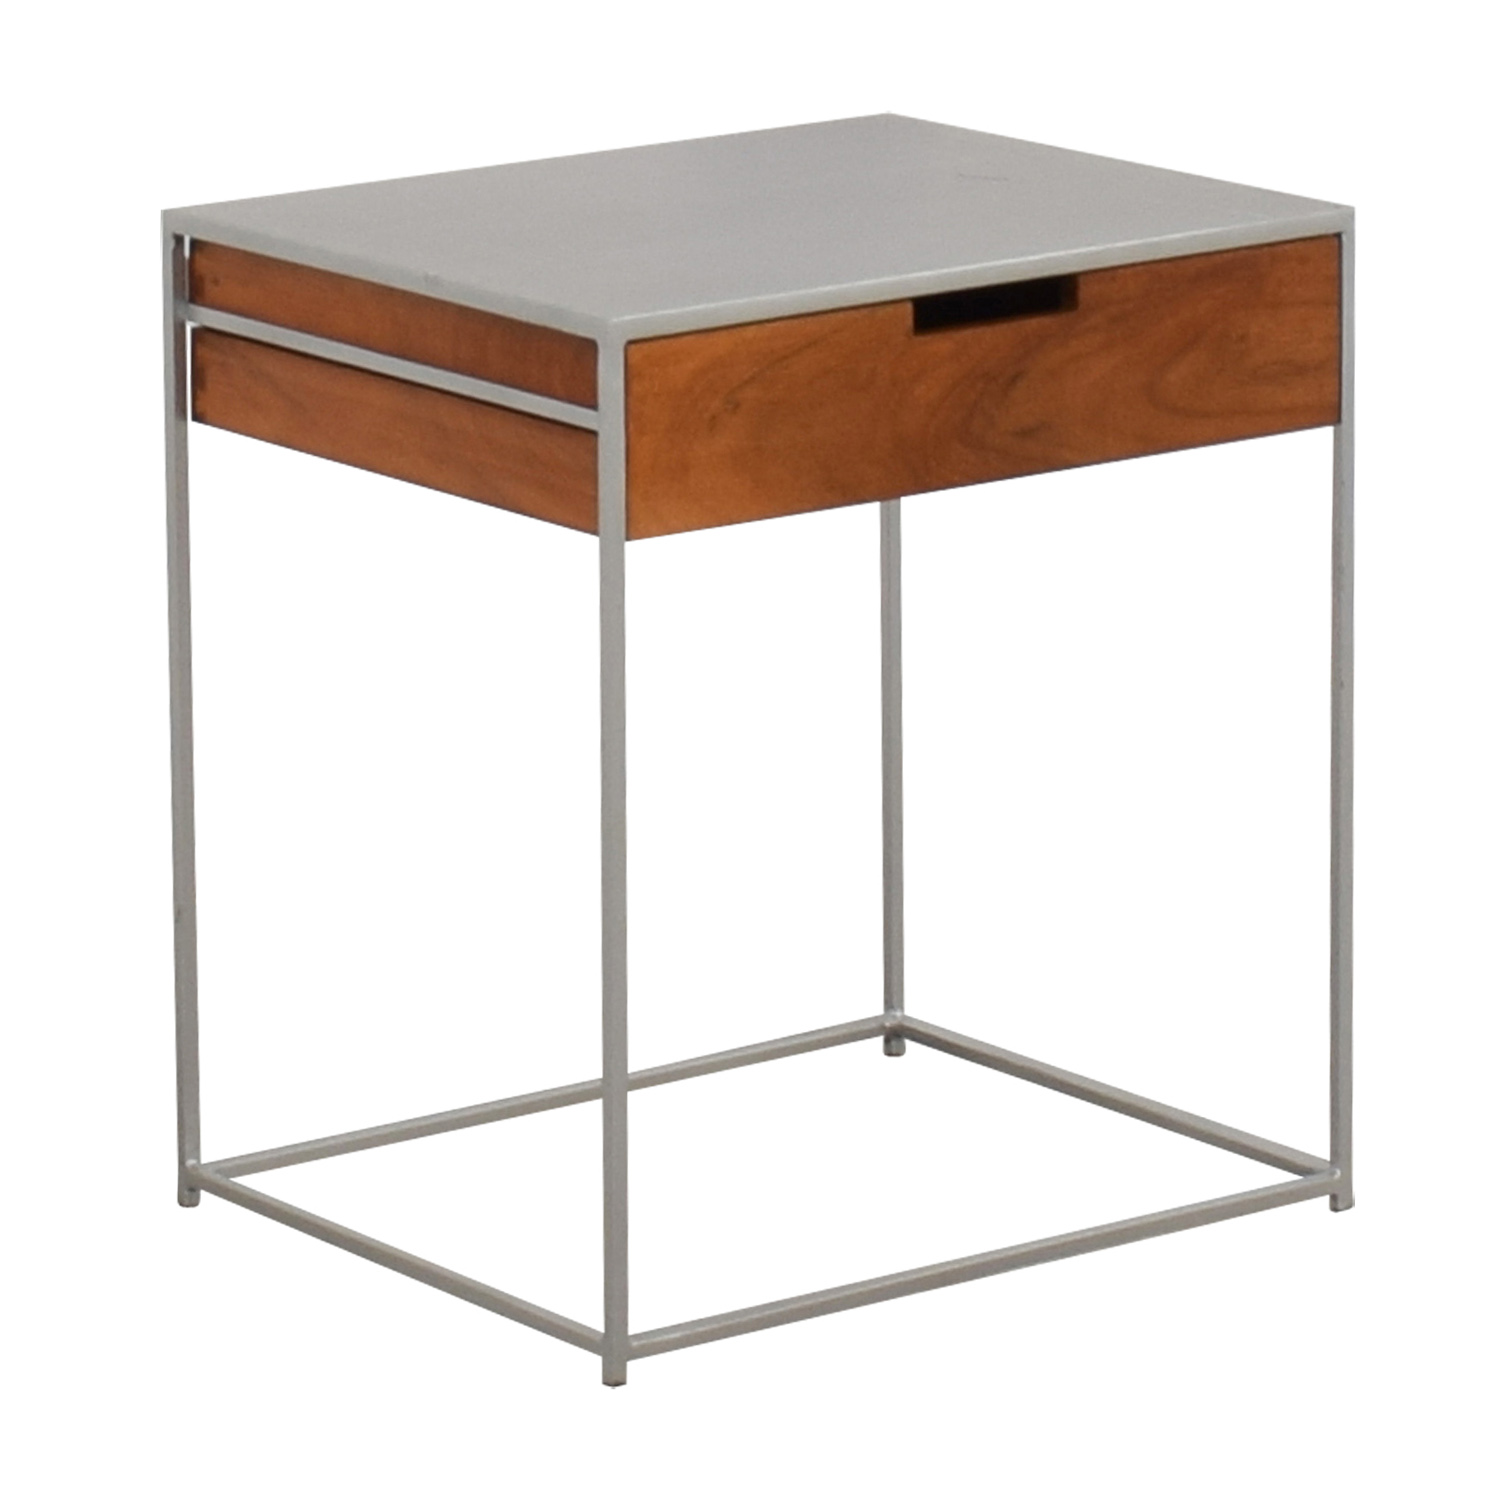 53 Off Cb2 Cb2 Audrey Metal And Wood Night Stand Tables